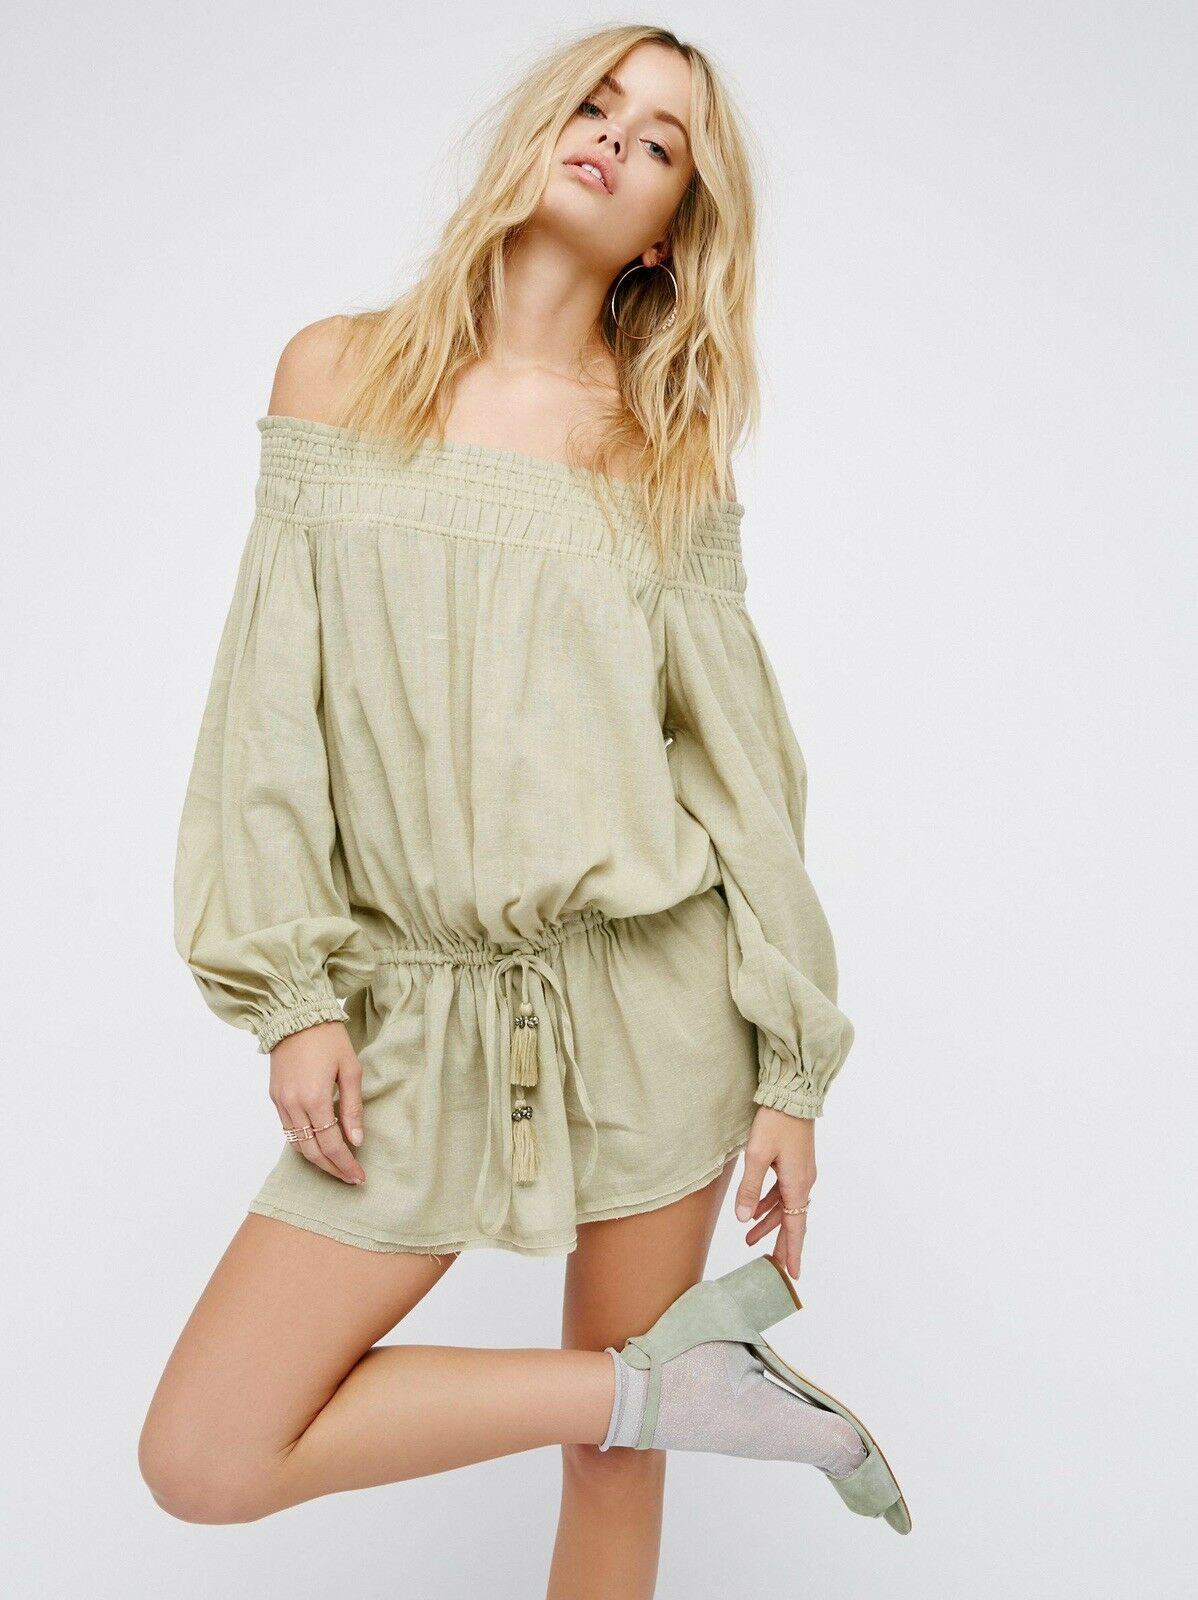 NEW FREE PEOPLE Sz S ENDLESS SUMMER THIS IS IT OFF THE SHOULDER MINI DRESS GREEN